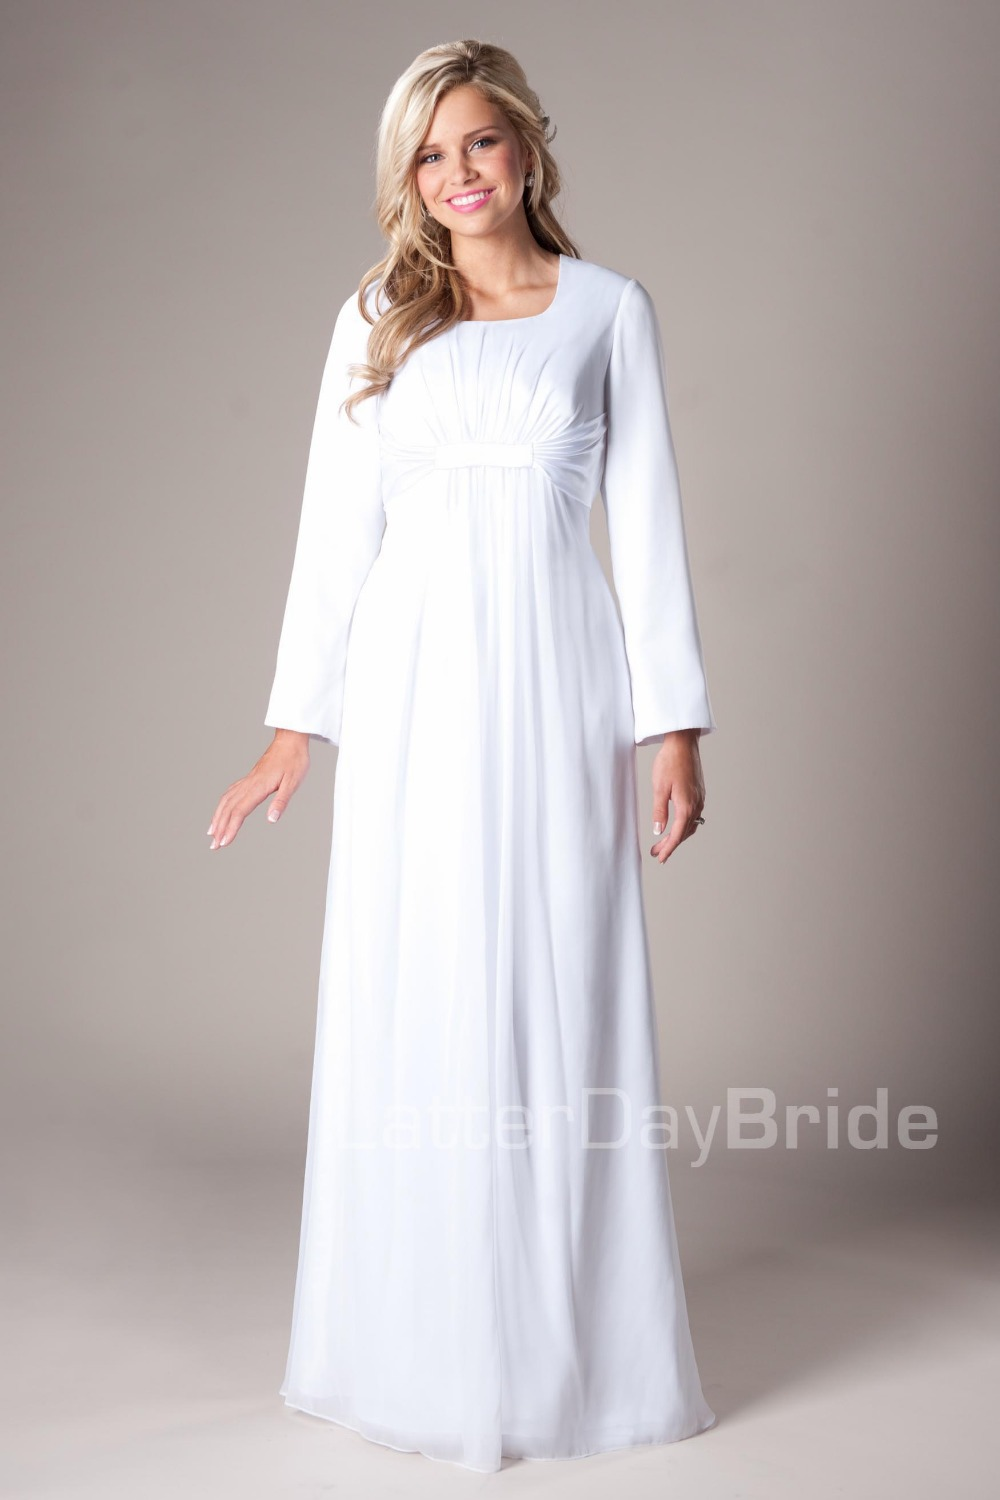 Long White Dresses with Long Sleeves